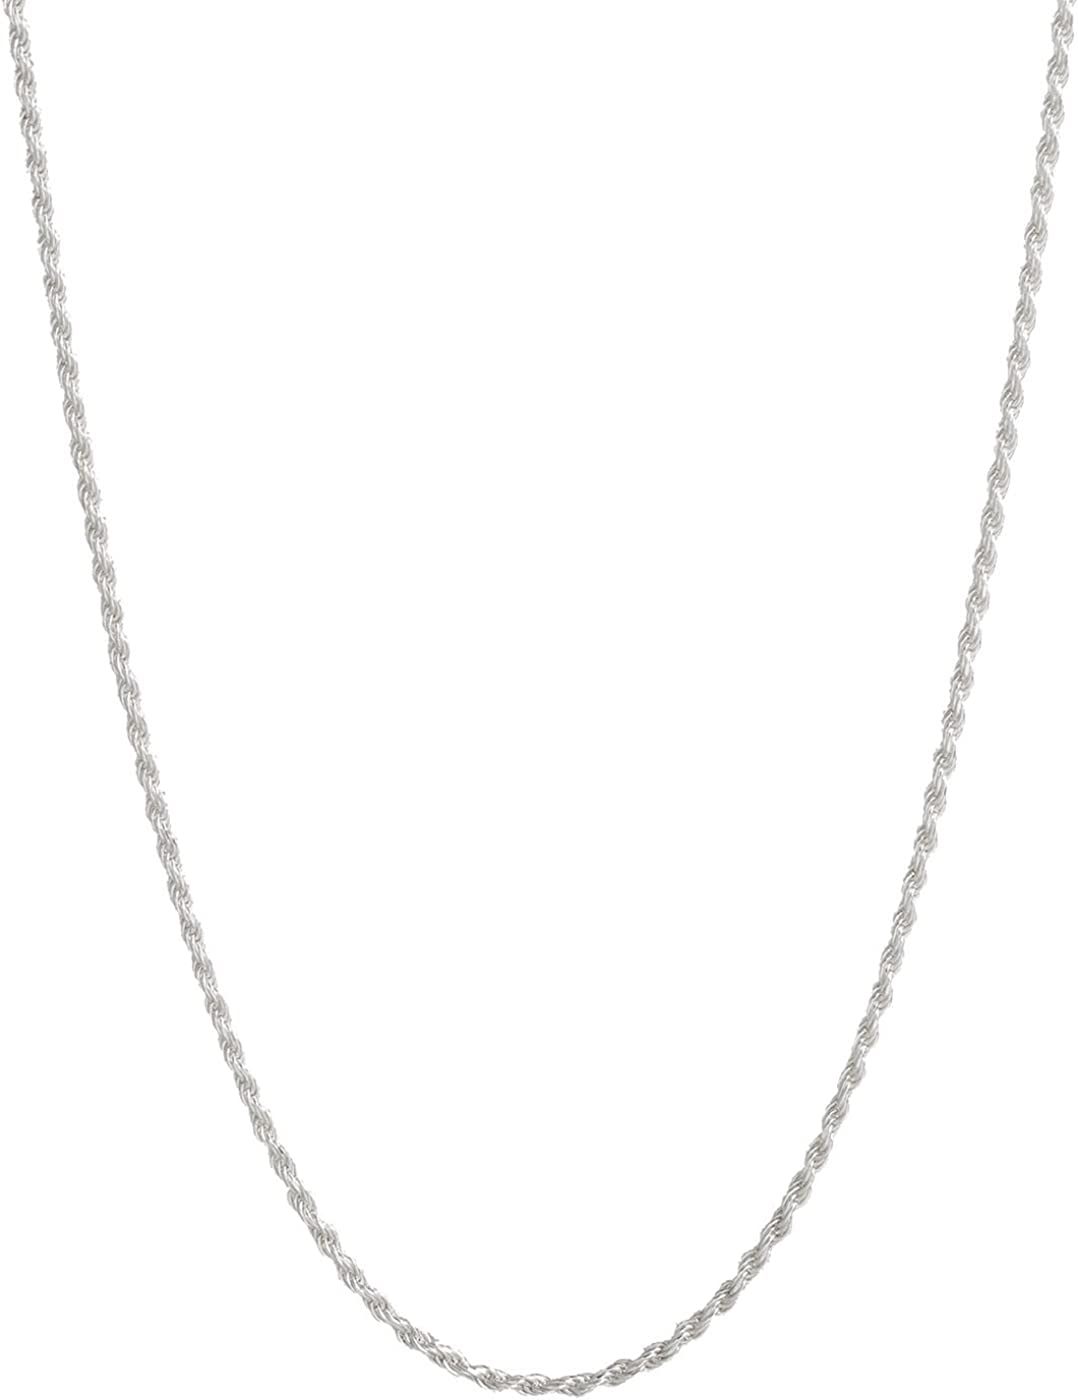 Italian .925 Sterling Silver 1.5mm or 2.25mm Rope Chain Necklace